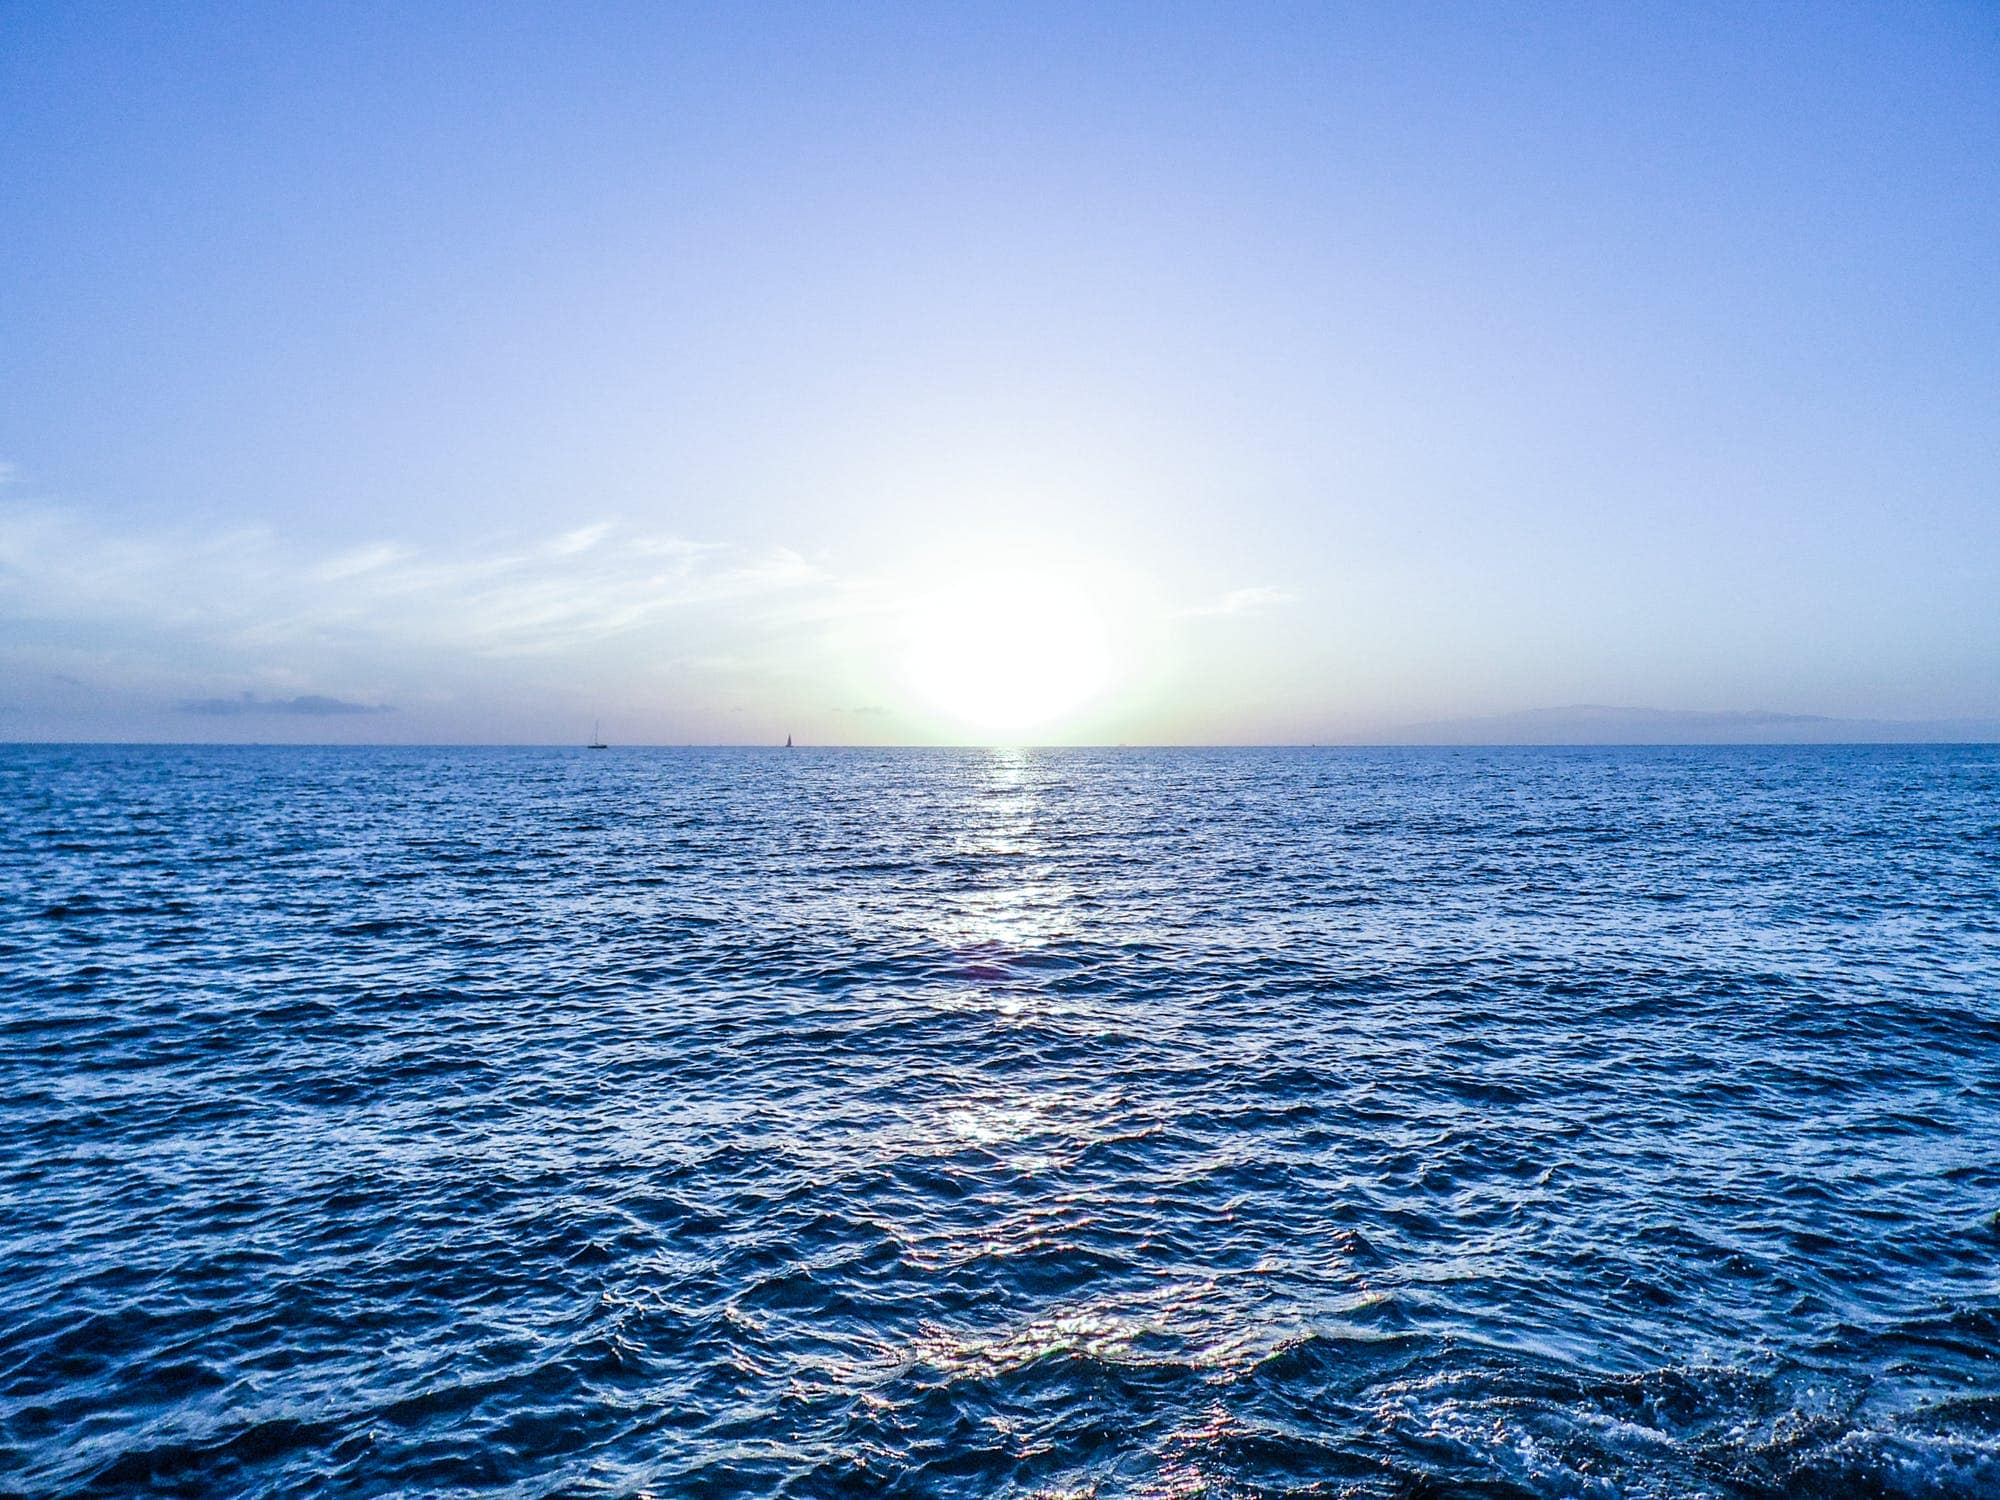 Ocean Image Ozone Therapy